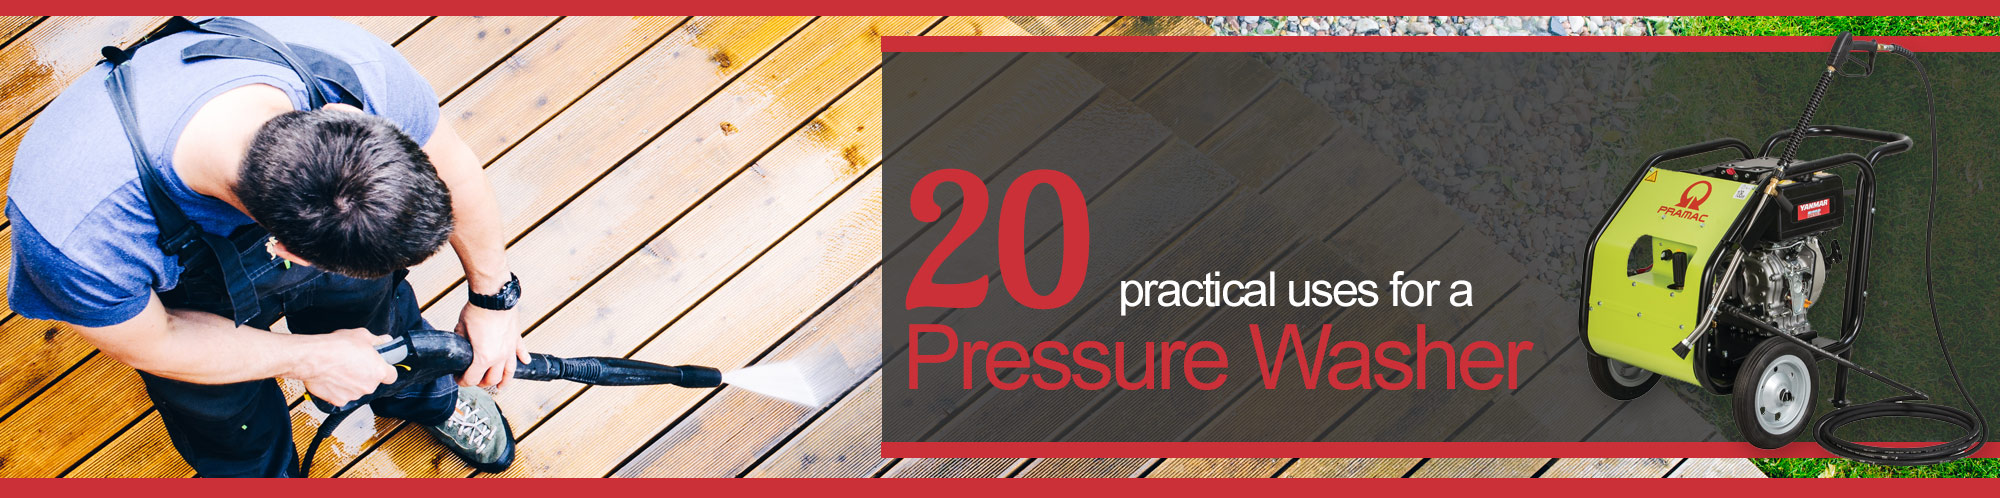 pressure washer uses